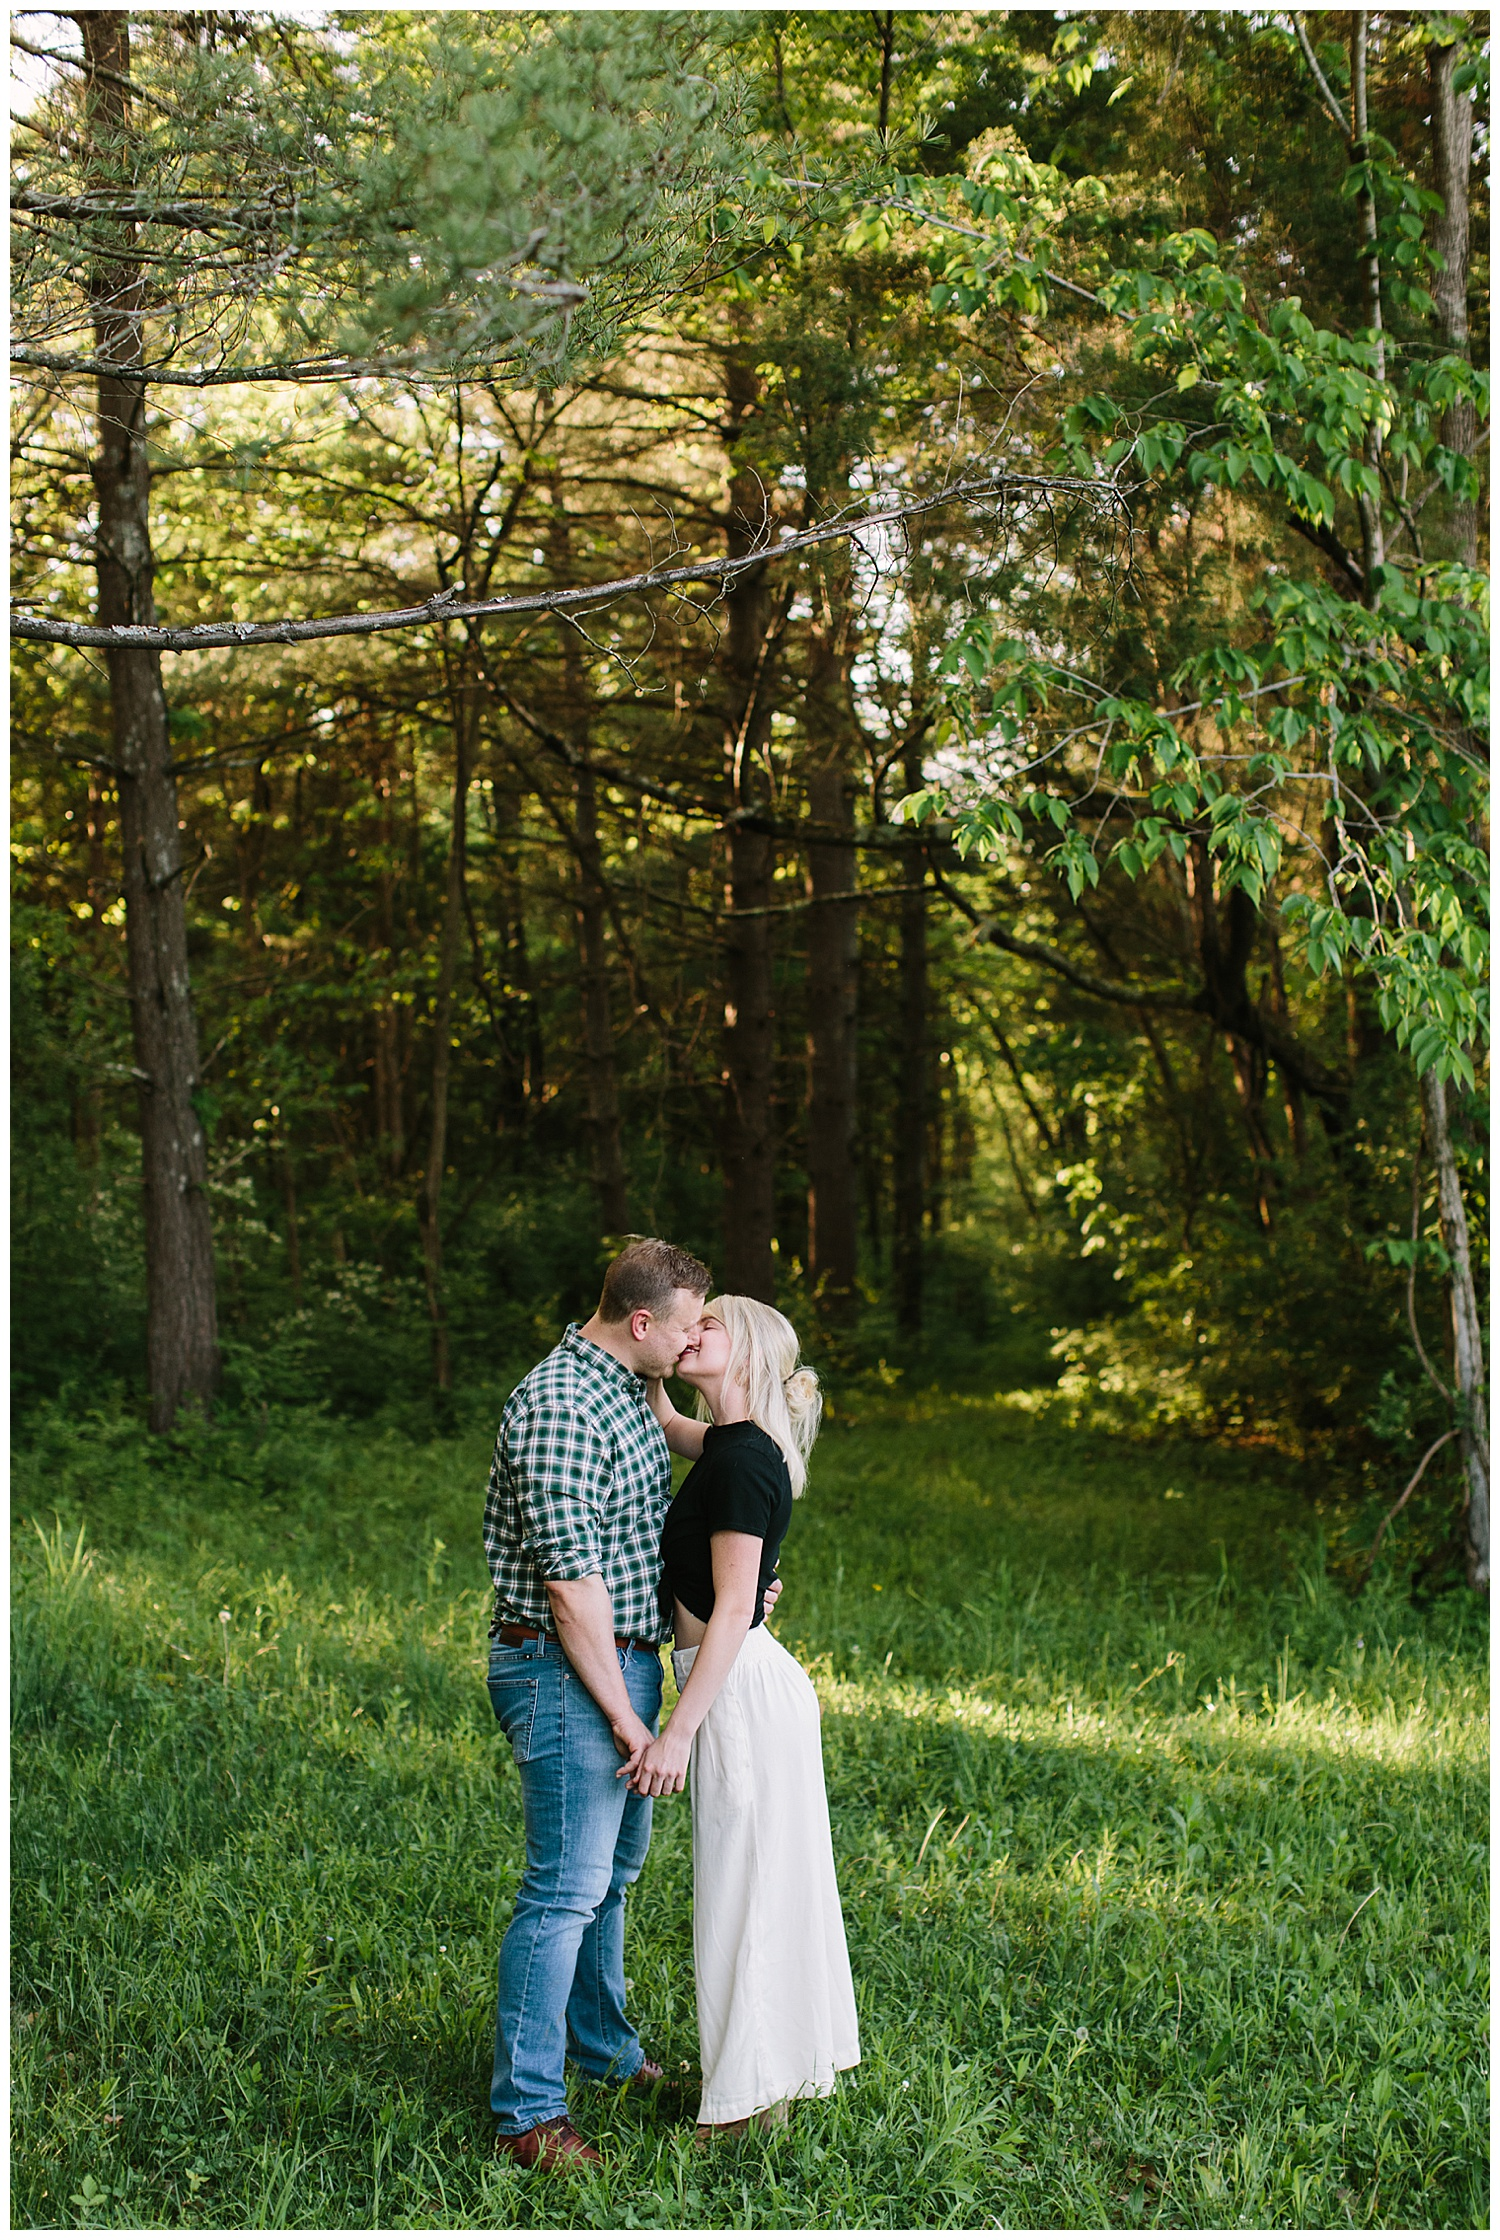 trent.and.kendra.photography.bernheim.forest.photos-19.jpg